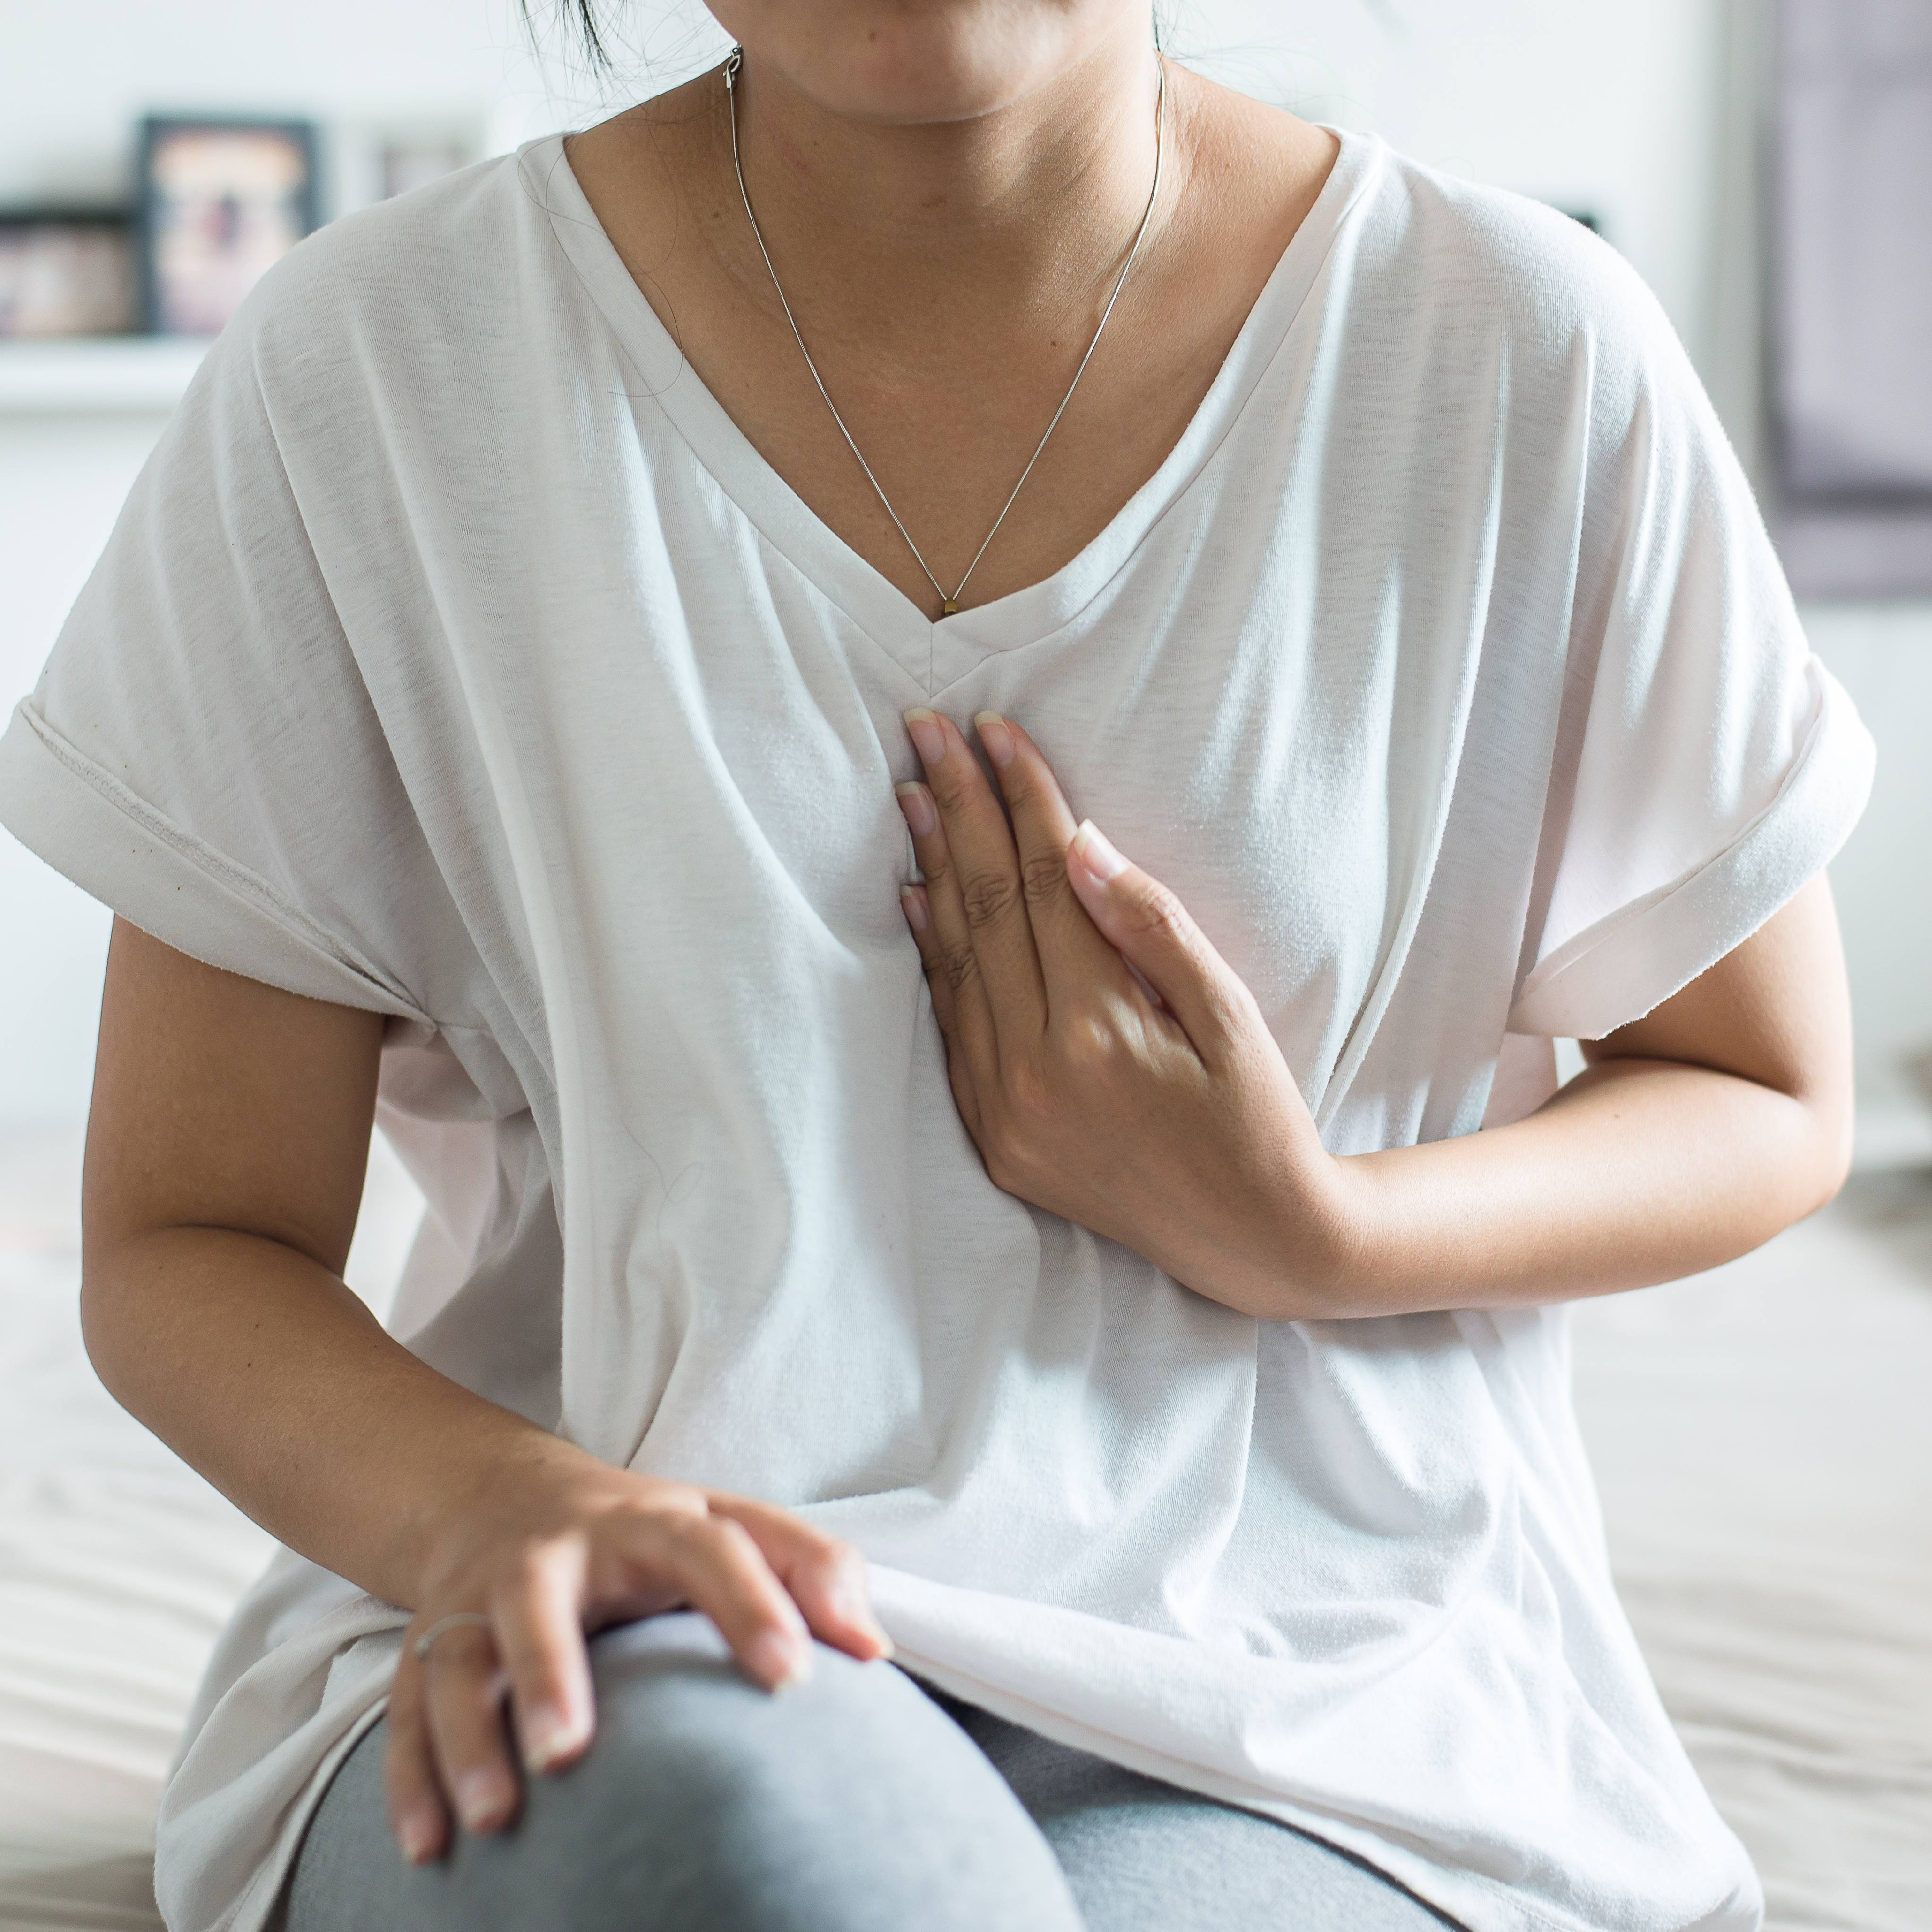 a white or perhaps a Latina woman in a white t-shirt sitting on the edge of bed, holding her hand to her chest, out of concern, stress, worry, heart pain